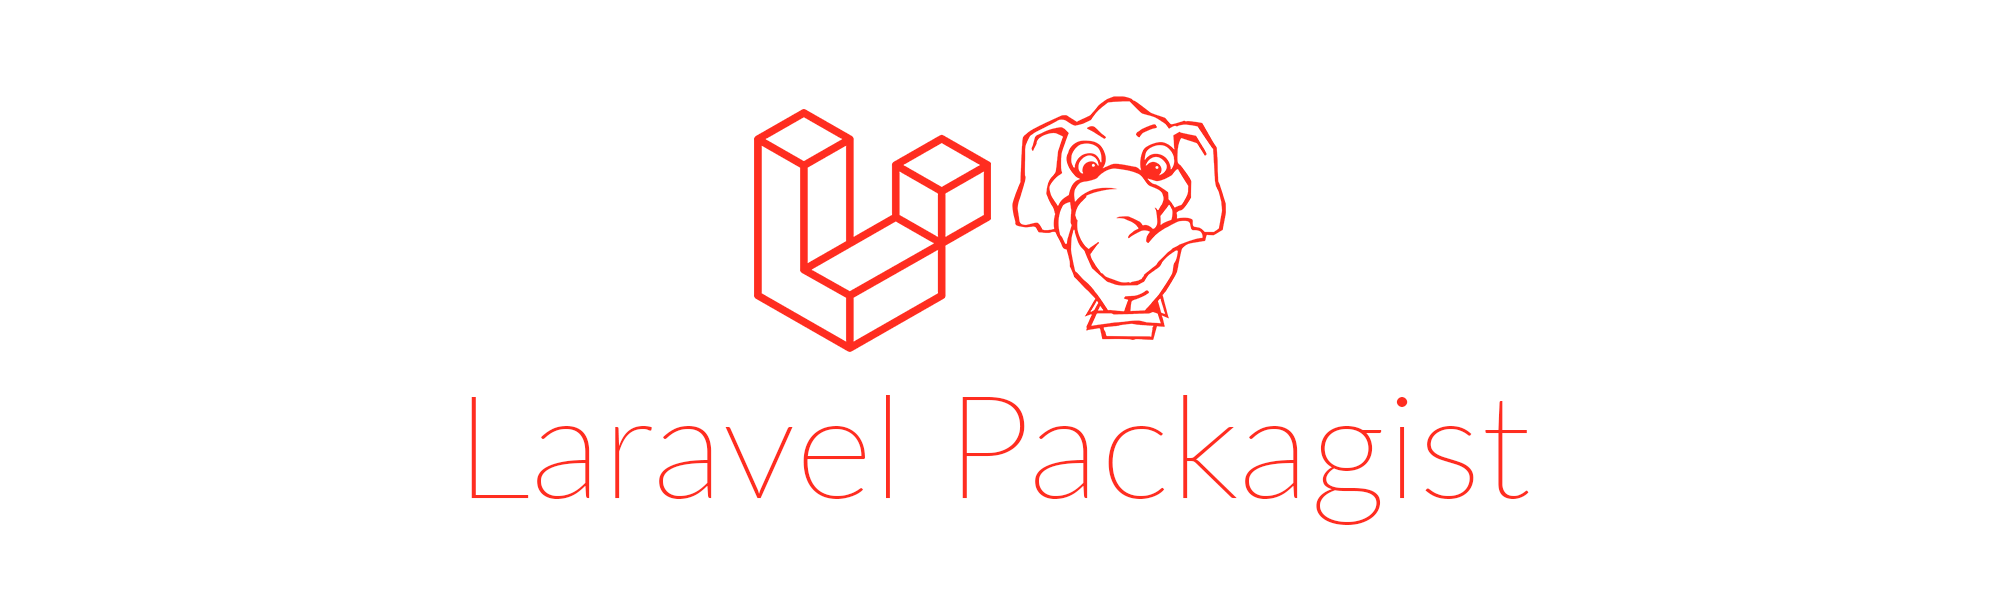 Laravel Packagist